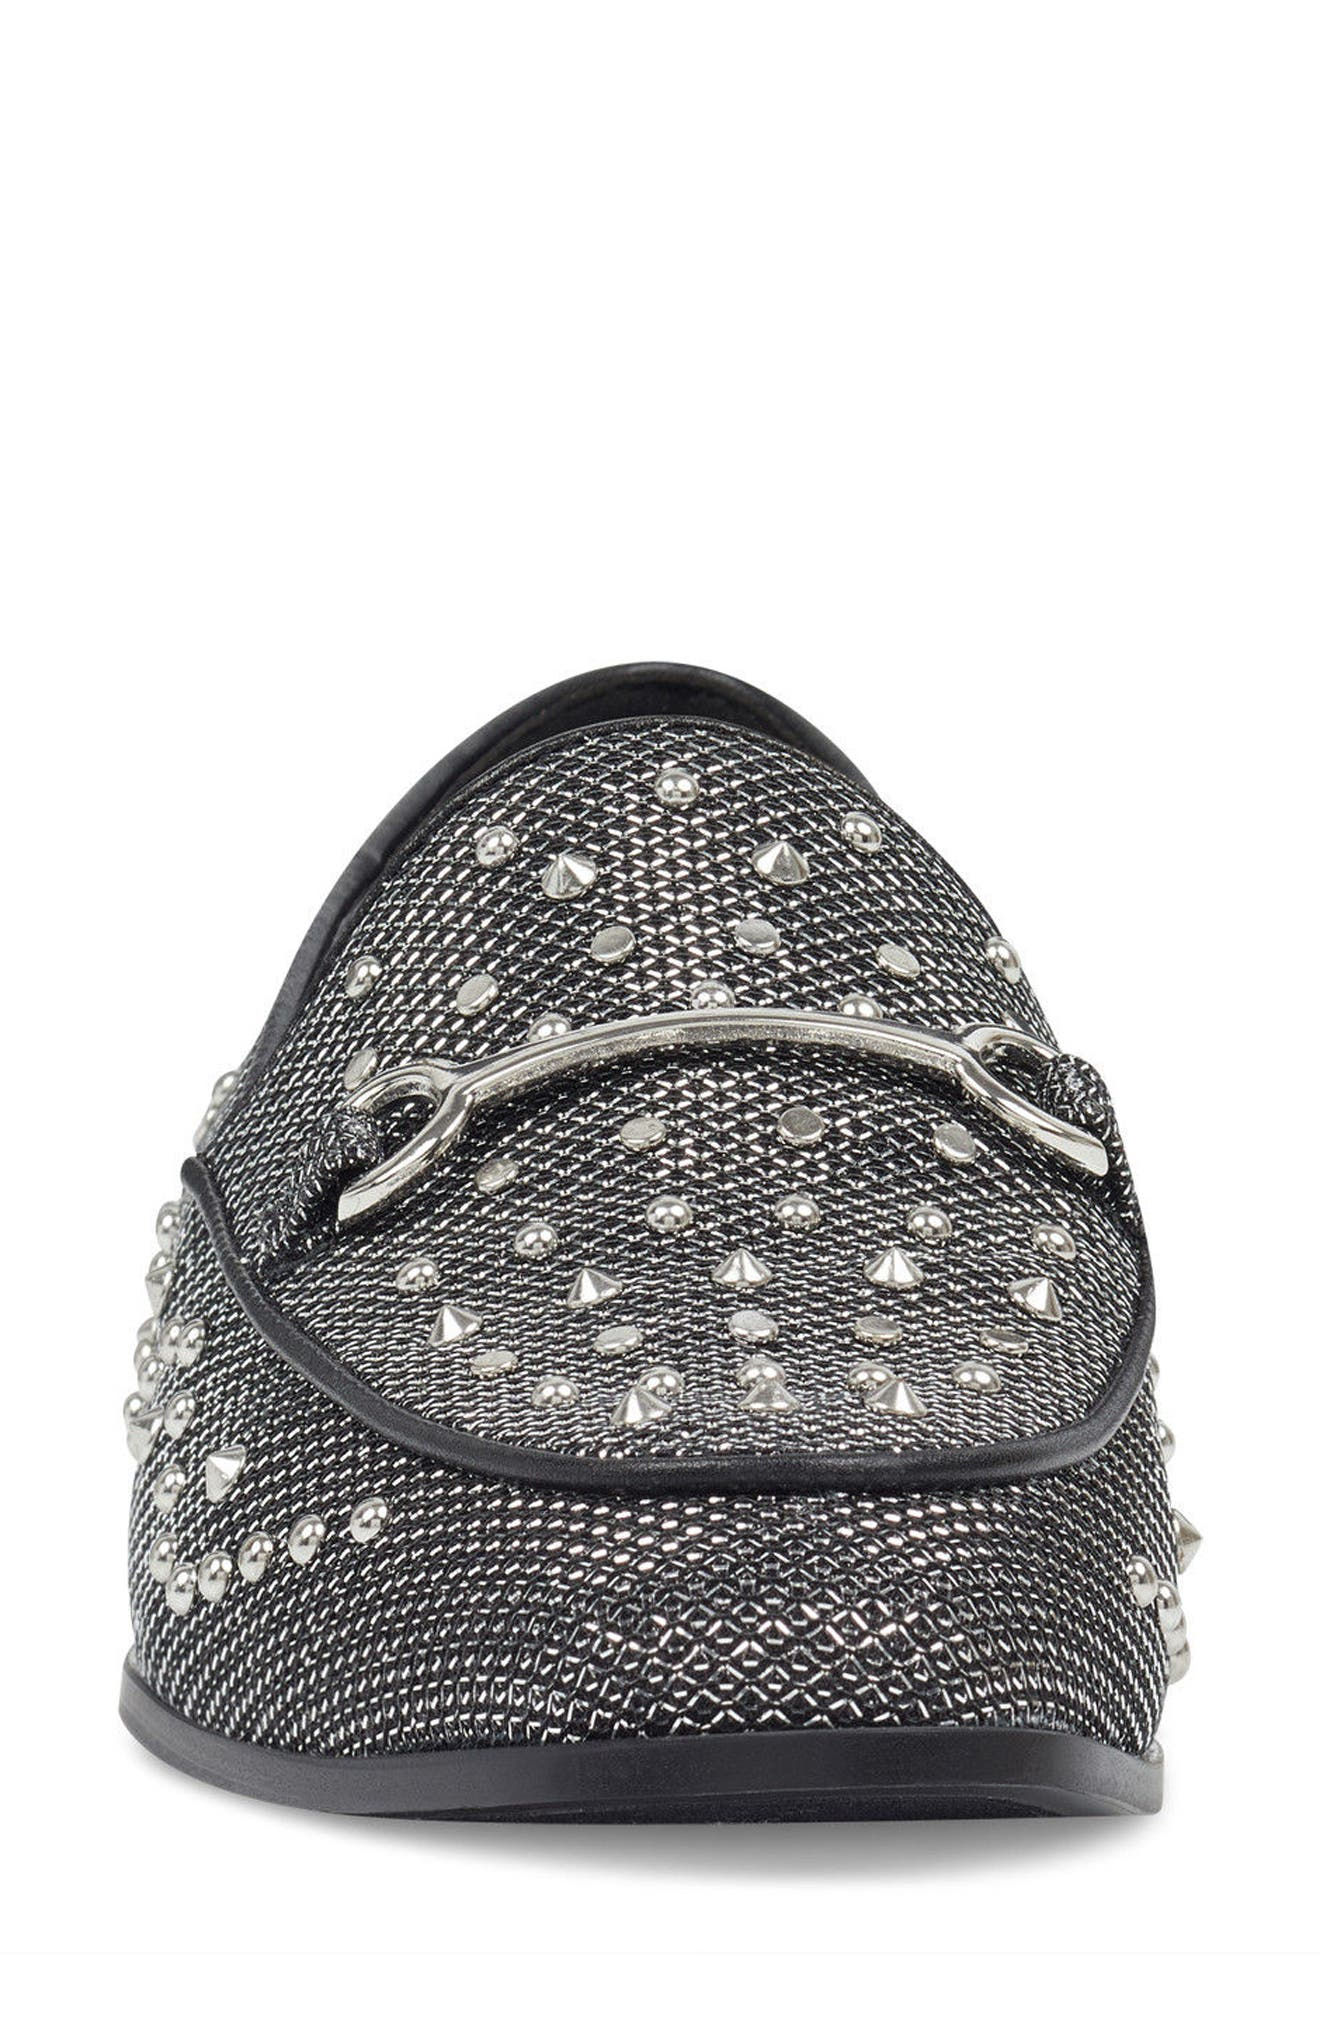 Westoy Studded Loafer,                             Alternate thumbnail 4, color,                             001